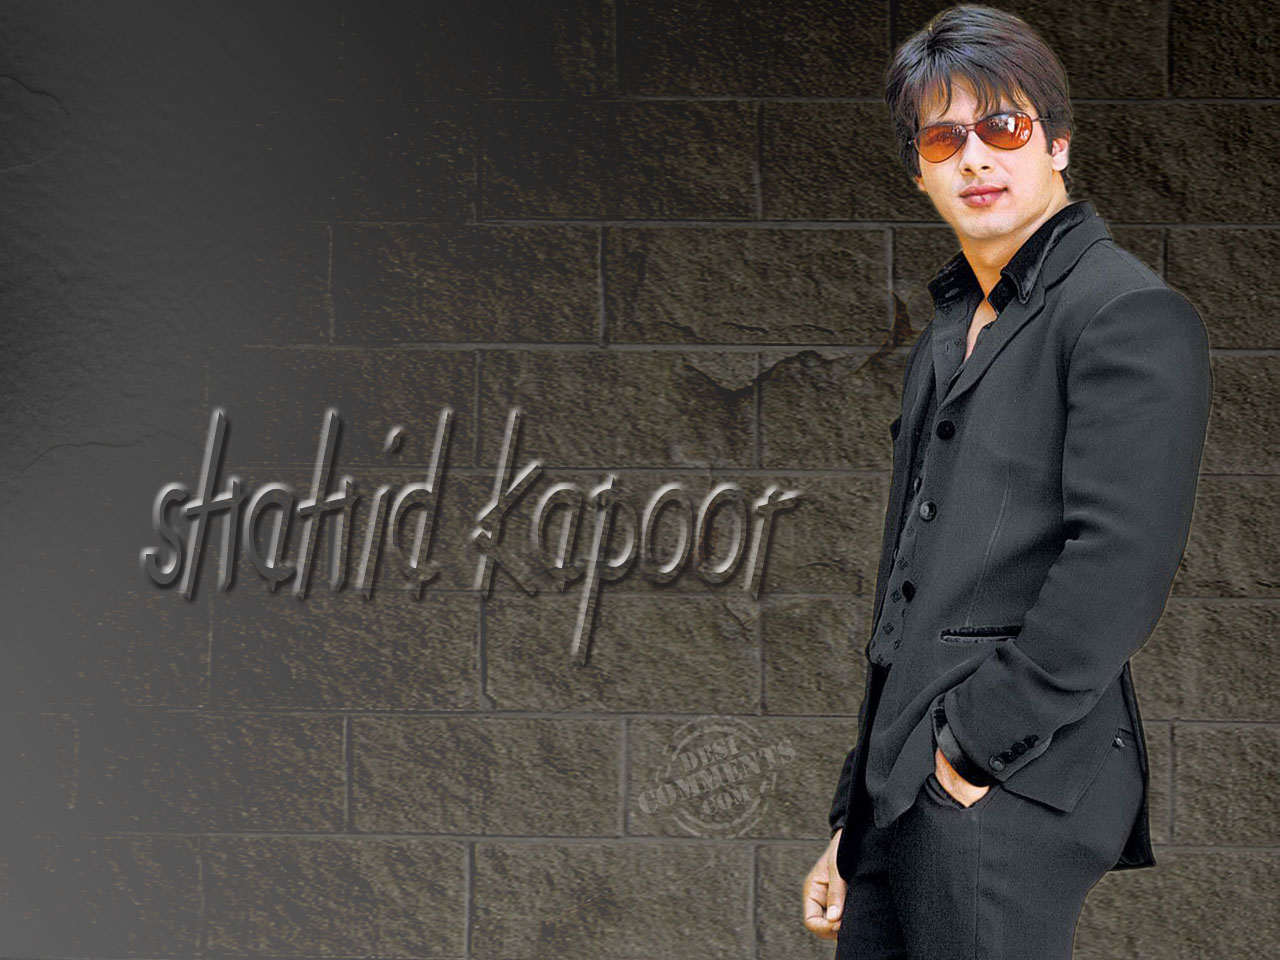 shahid kapoor new hd wallpapers - best actors wallpepar